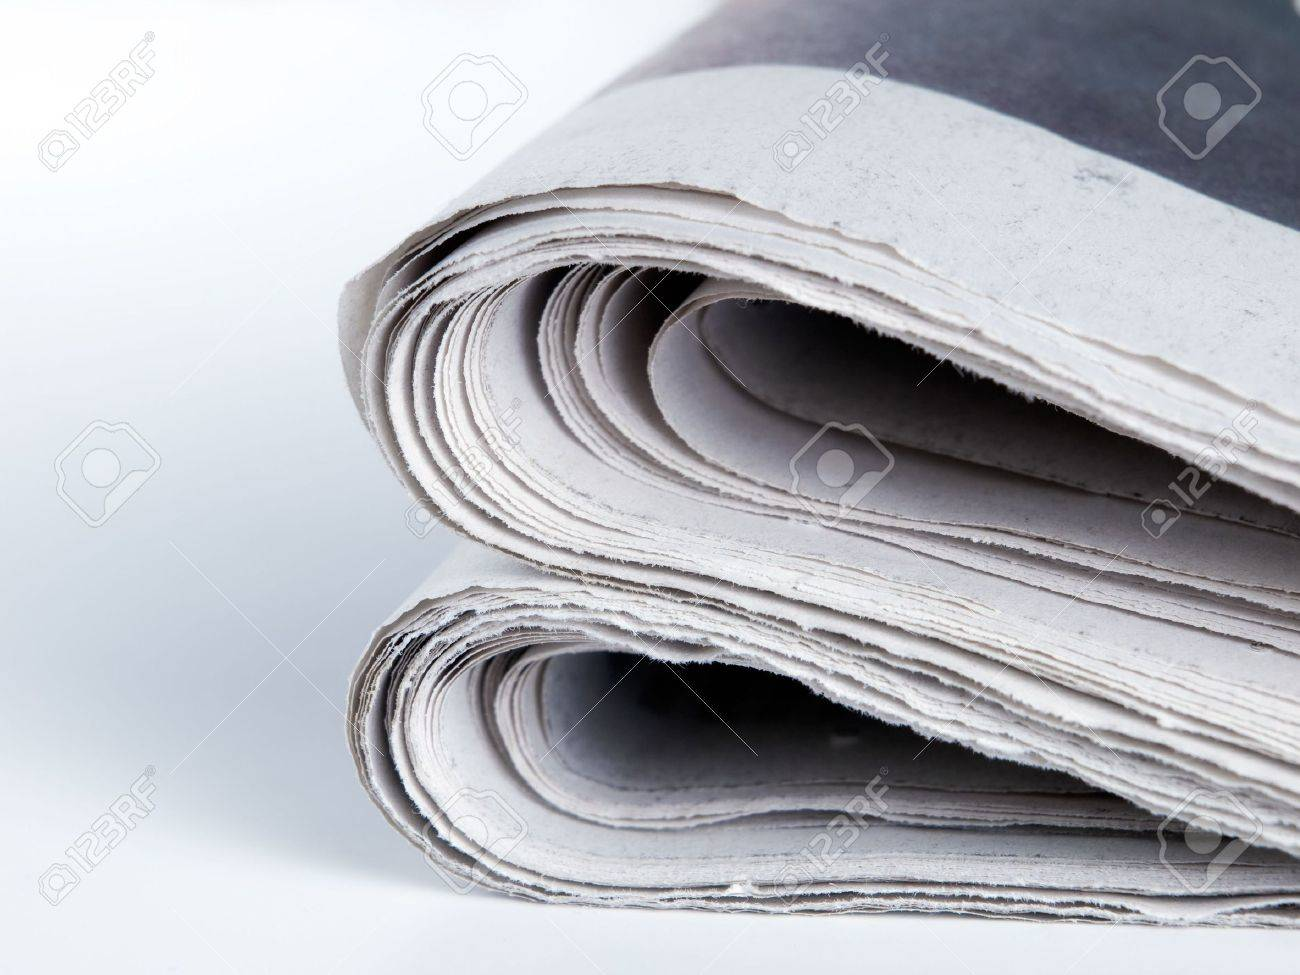 Folded edges of the  newspaper on a clear background. Stock Photo - 5815251